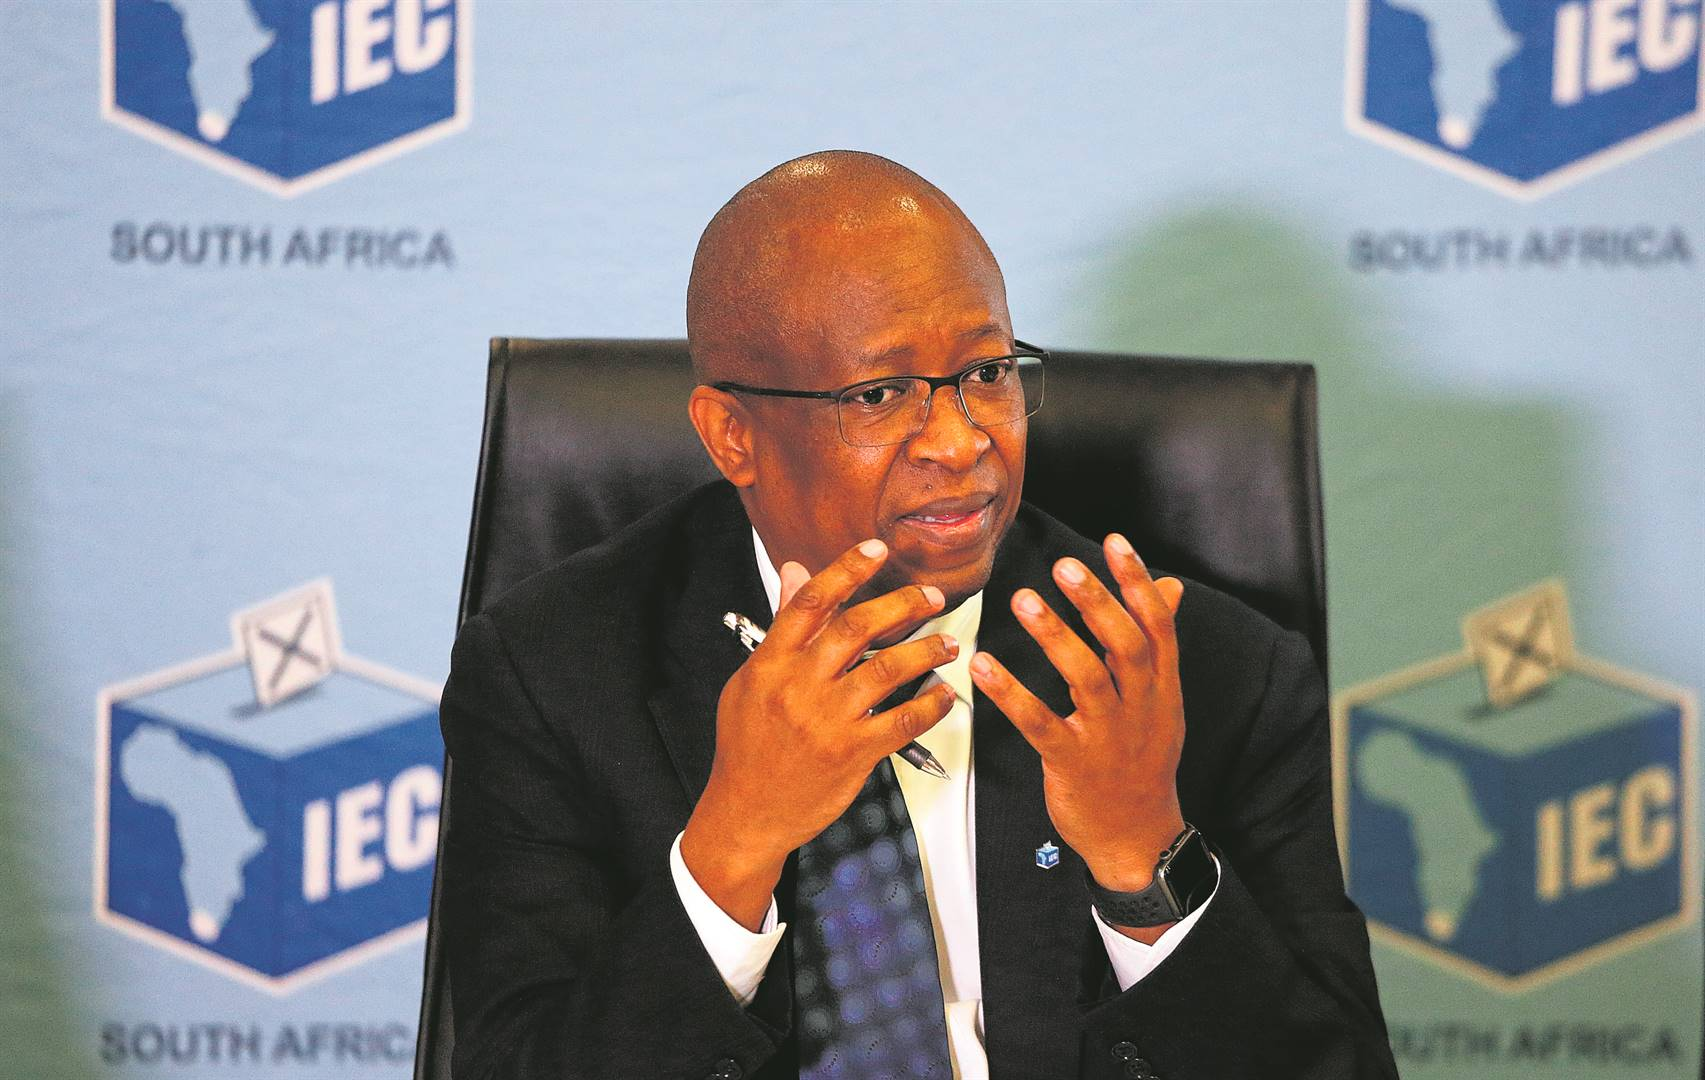 IEC CEO Sy Mamabolo said the decision was based on legal advice.Photo byGallo Images/Phill Magakoe